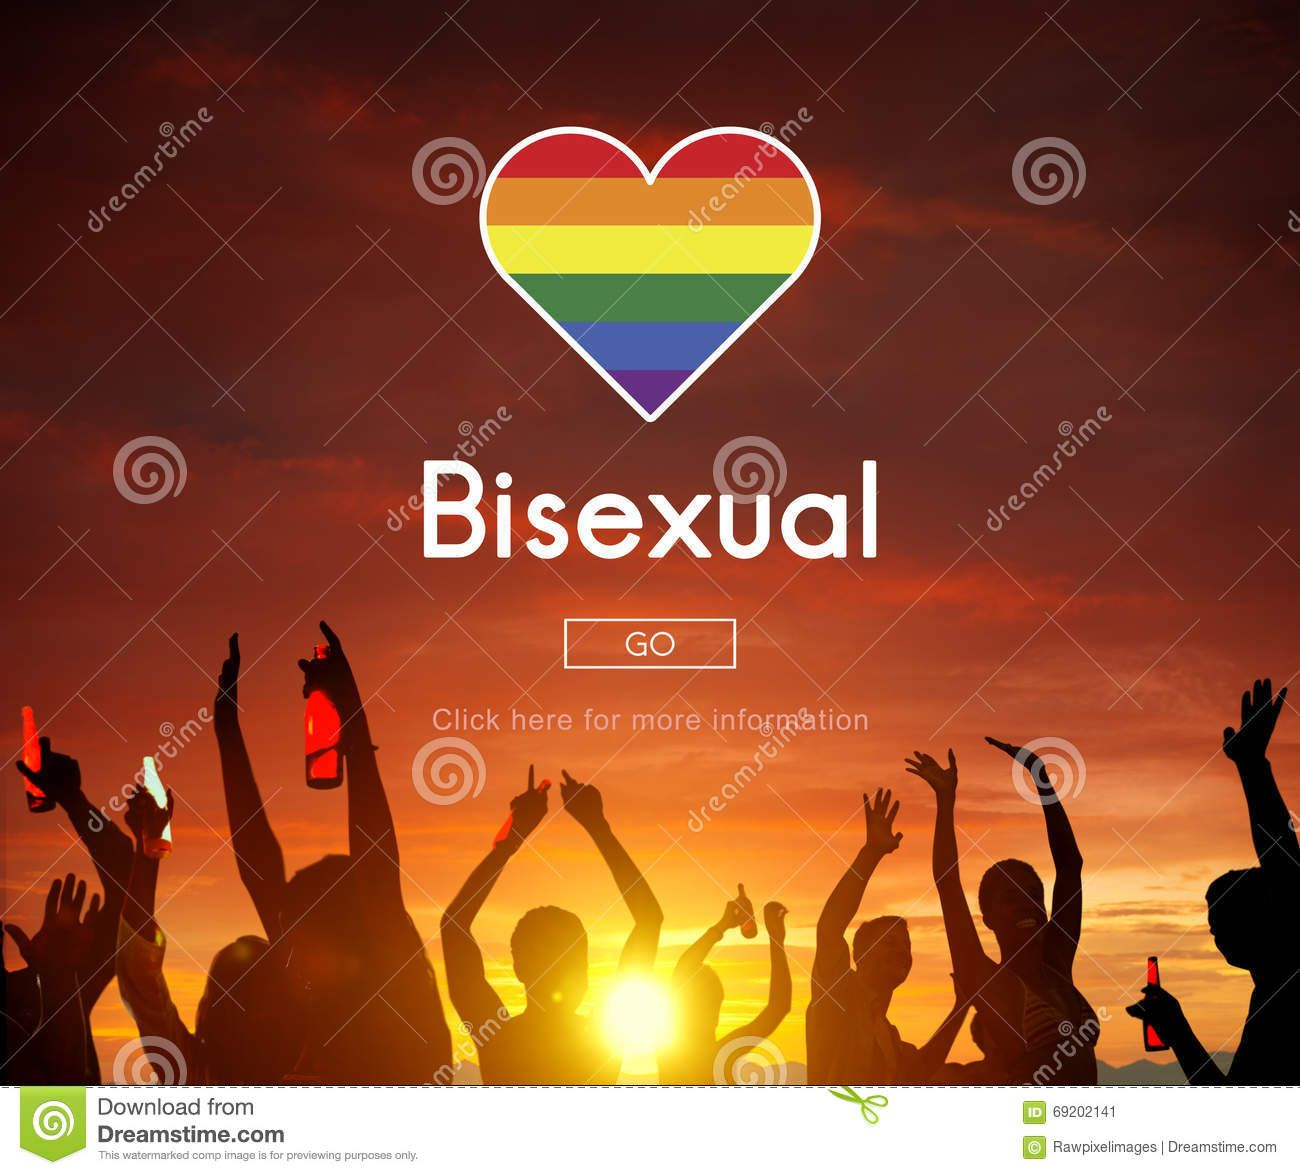 Squeaker reccomend Free bisexual personal